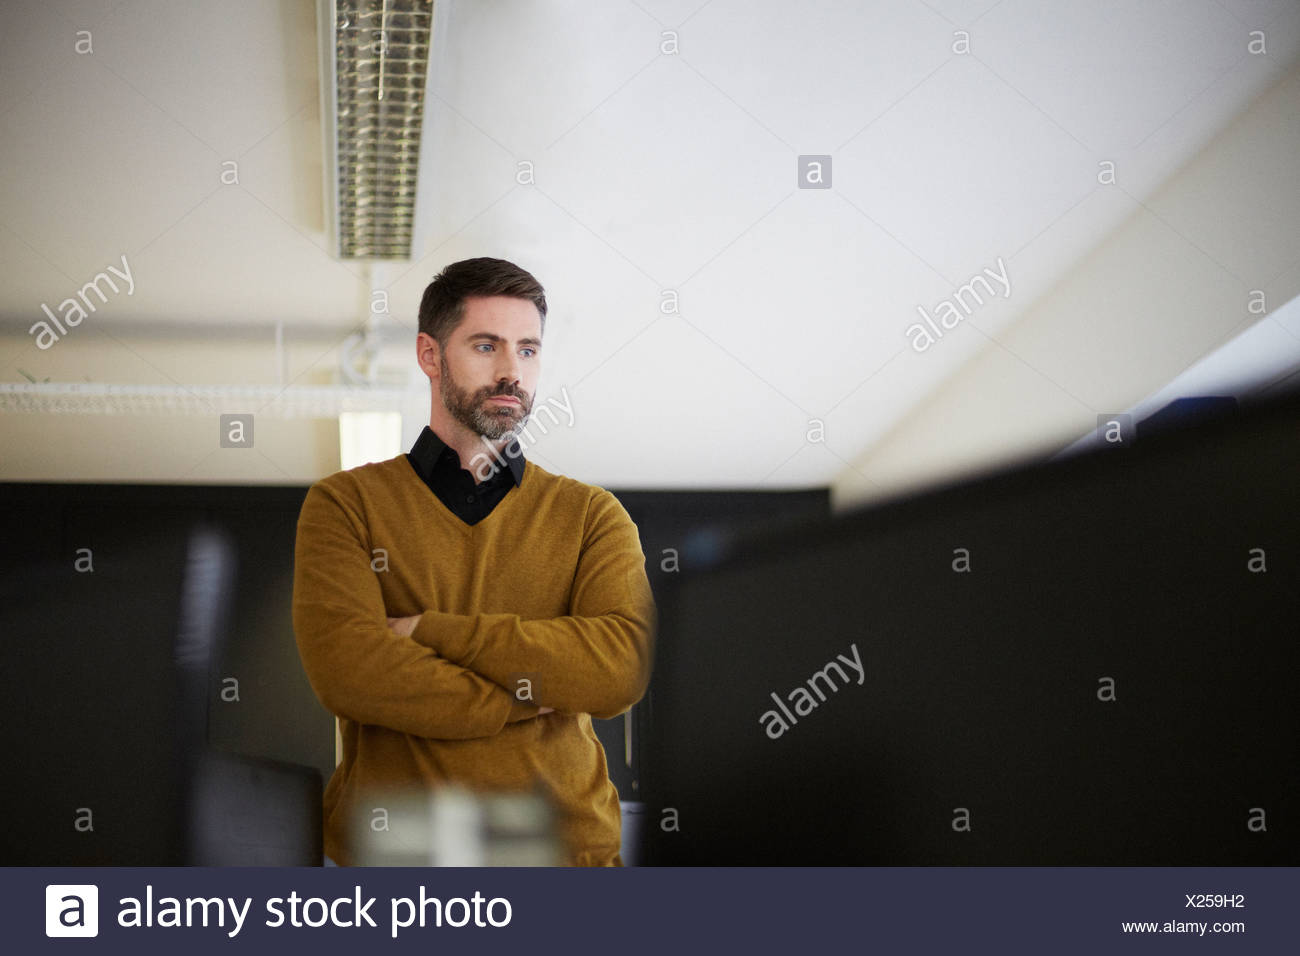 Casual businessman in office - Stock Image